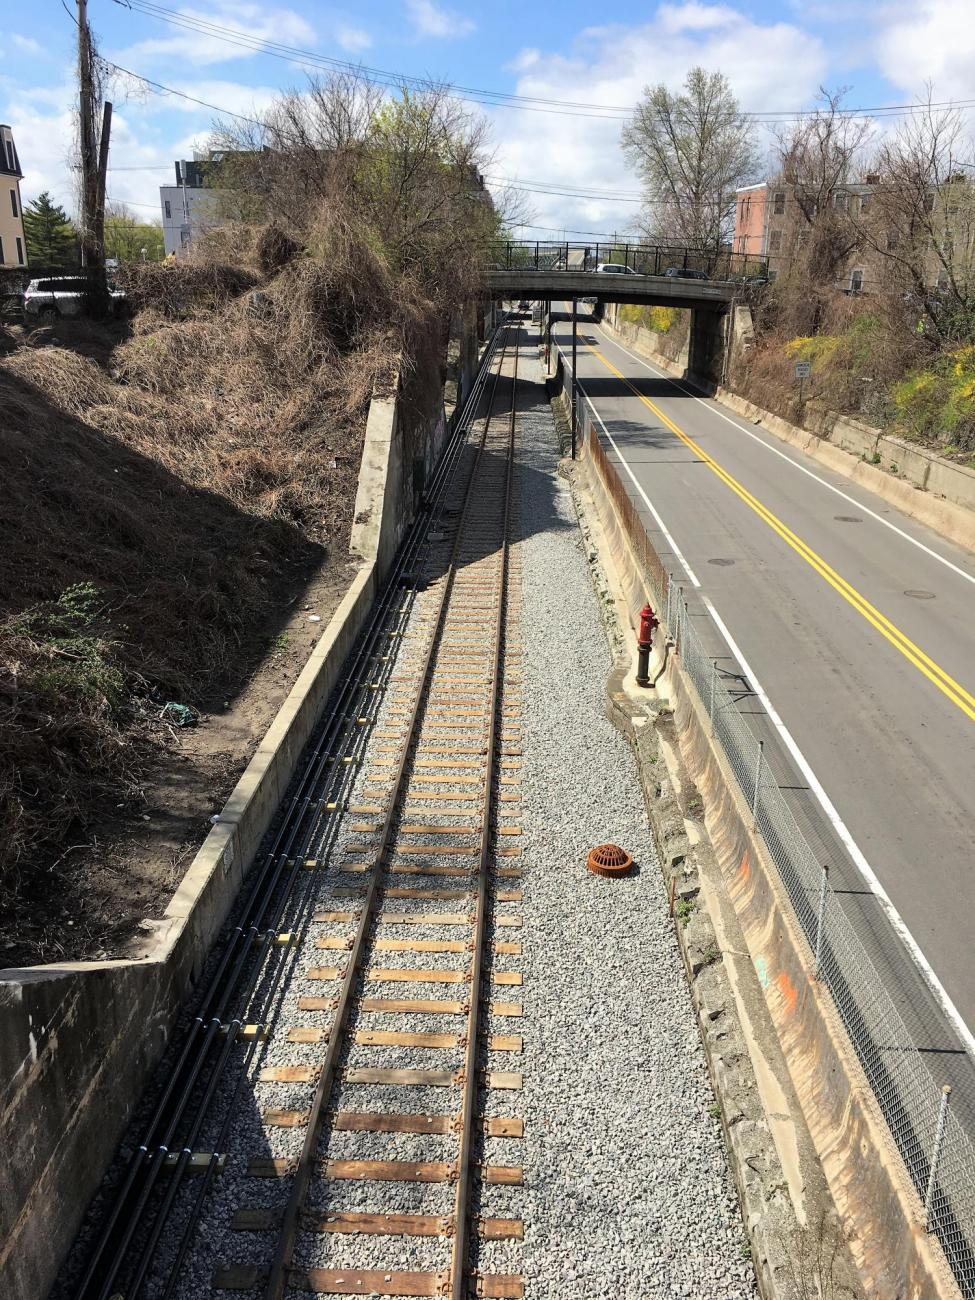 View of the Test Track looking south from West 4th Street in South Boston (April 2019)